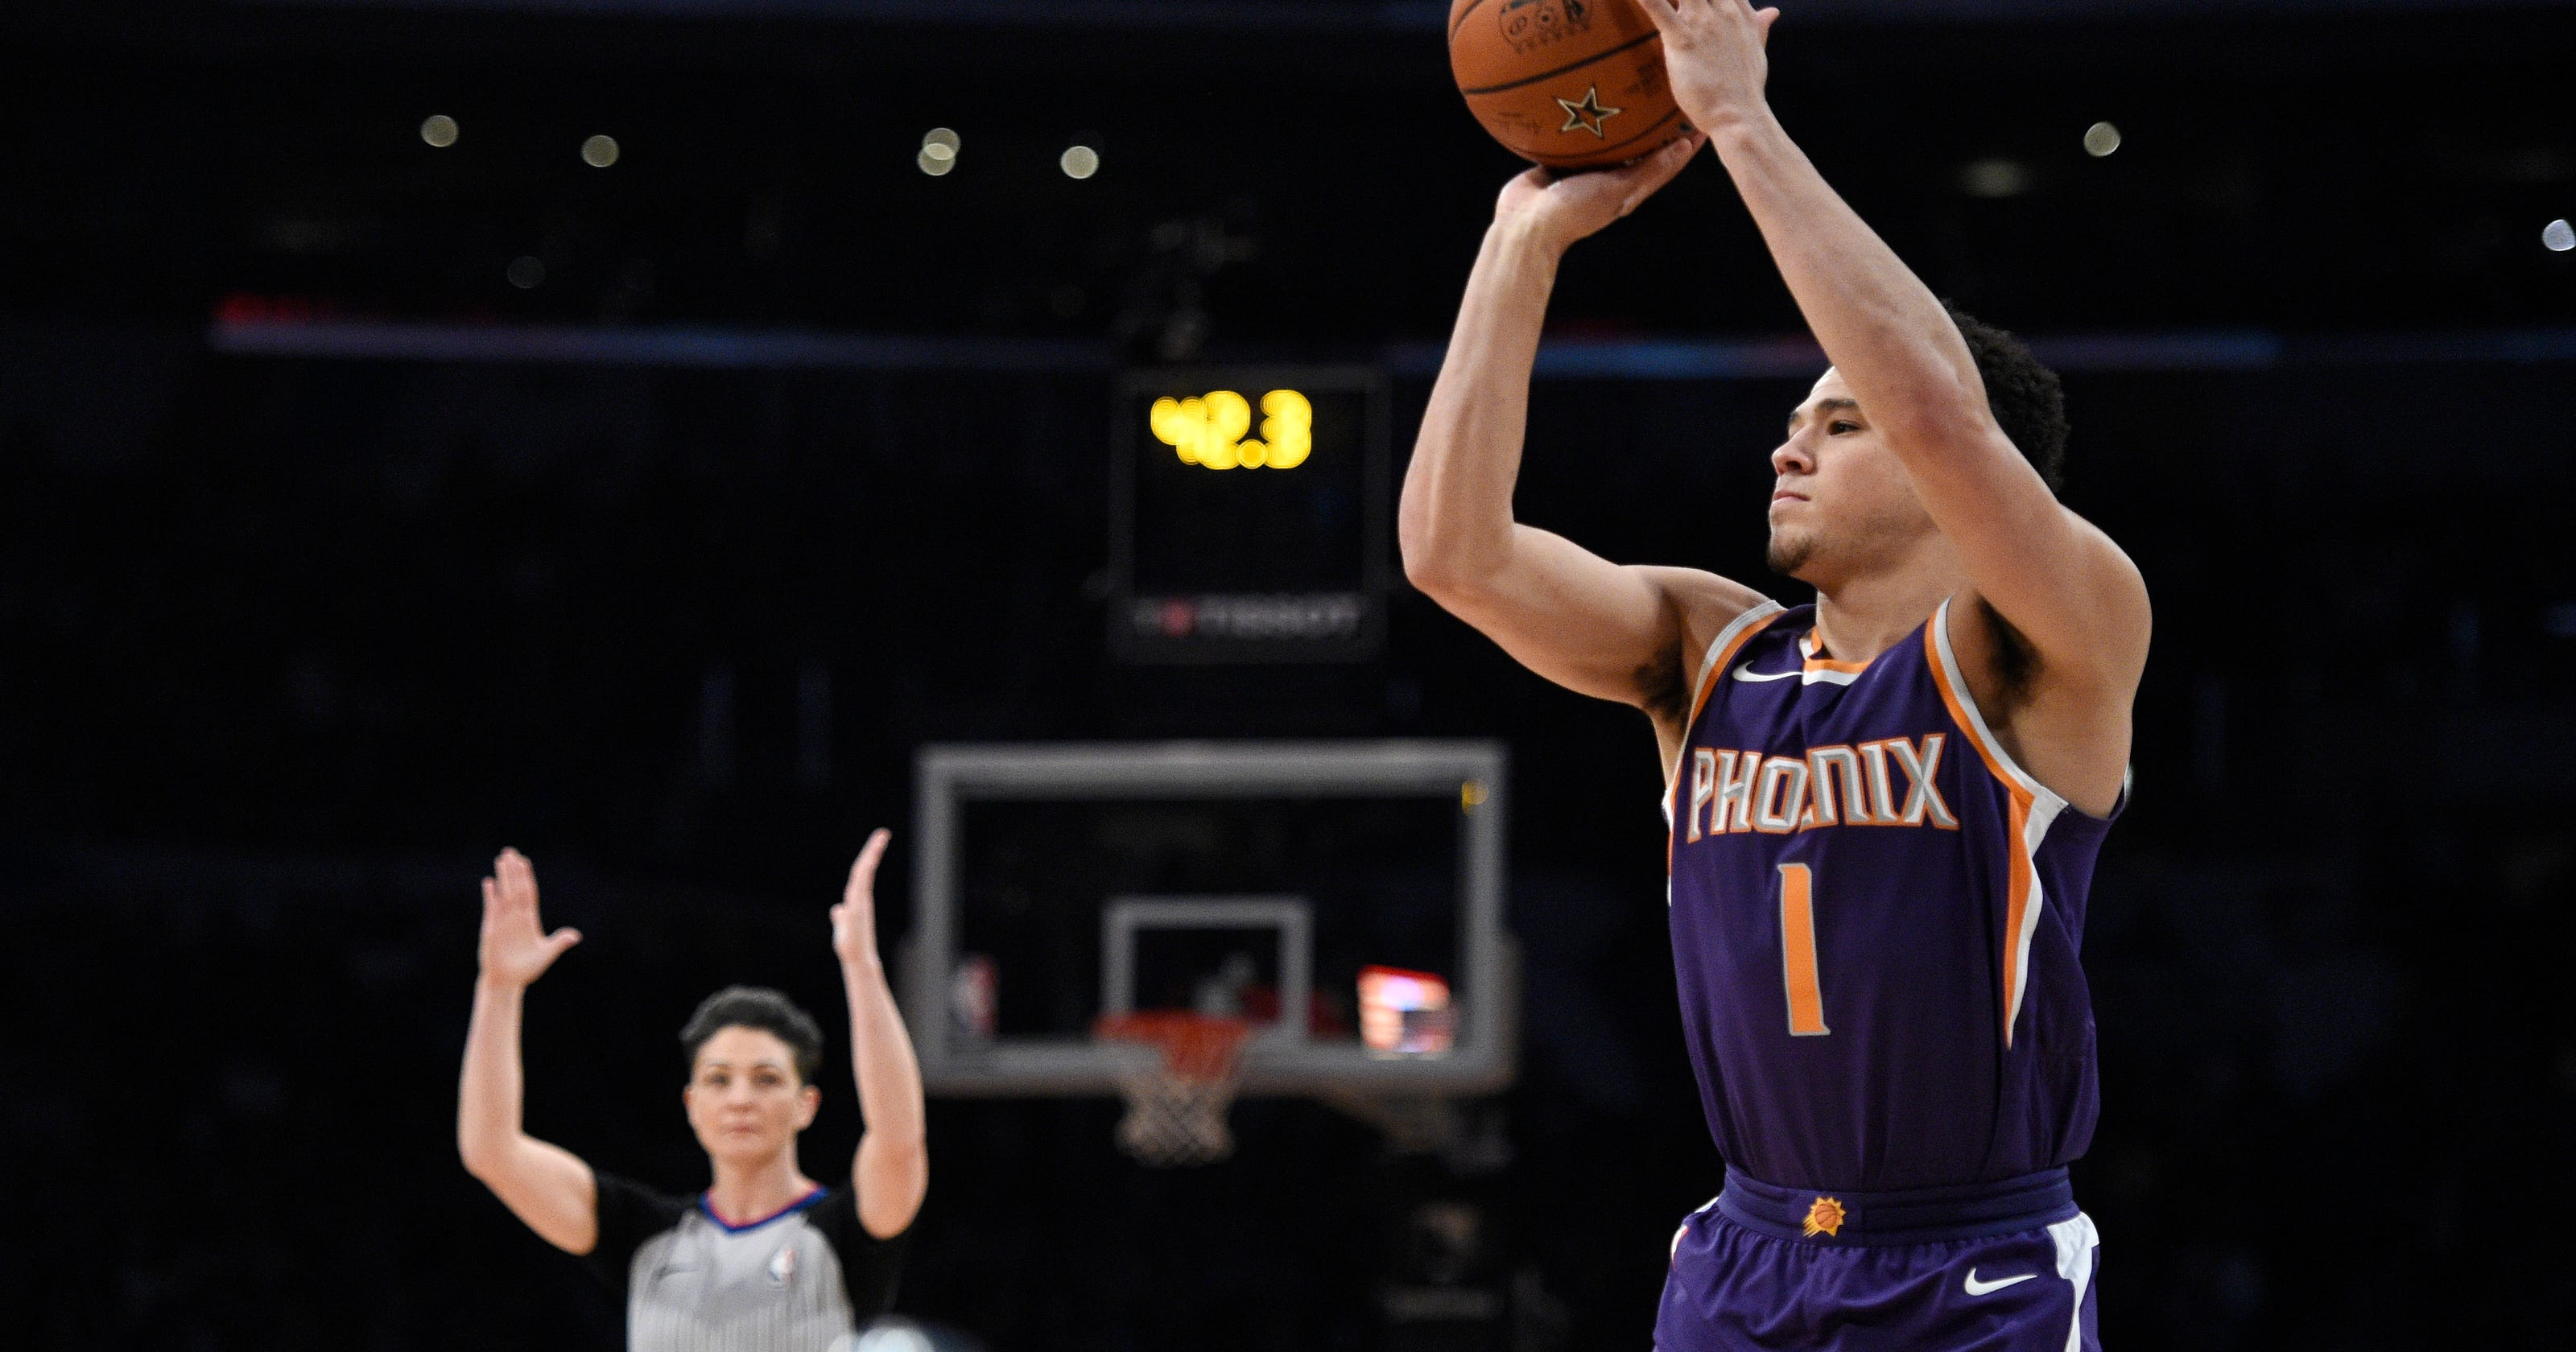 b33284412f93 3-point champion Booker stays upbeat as Suns losses mount